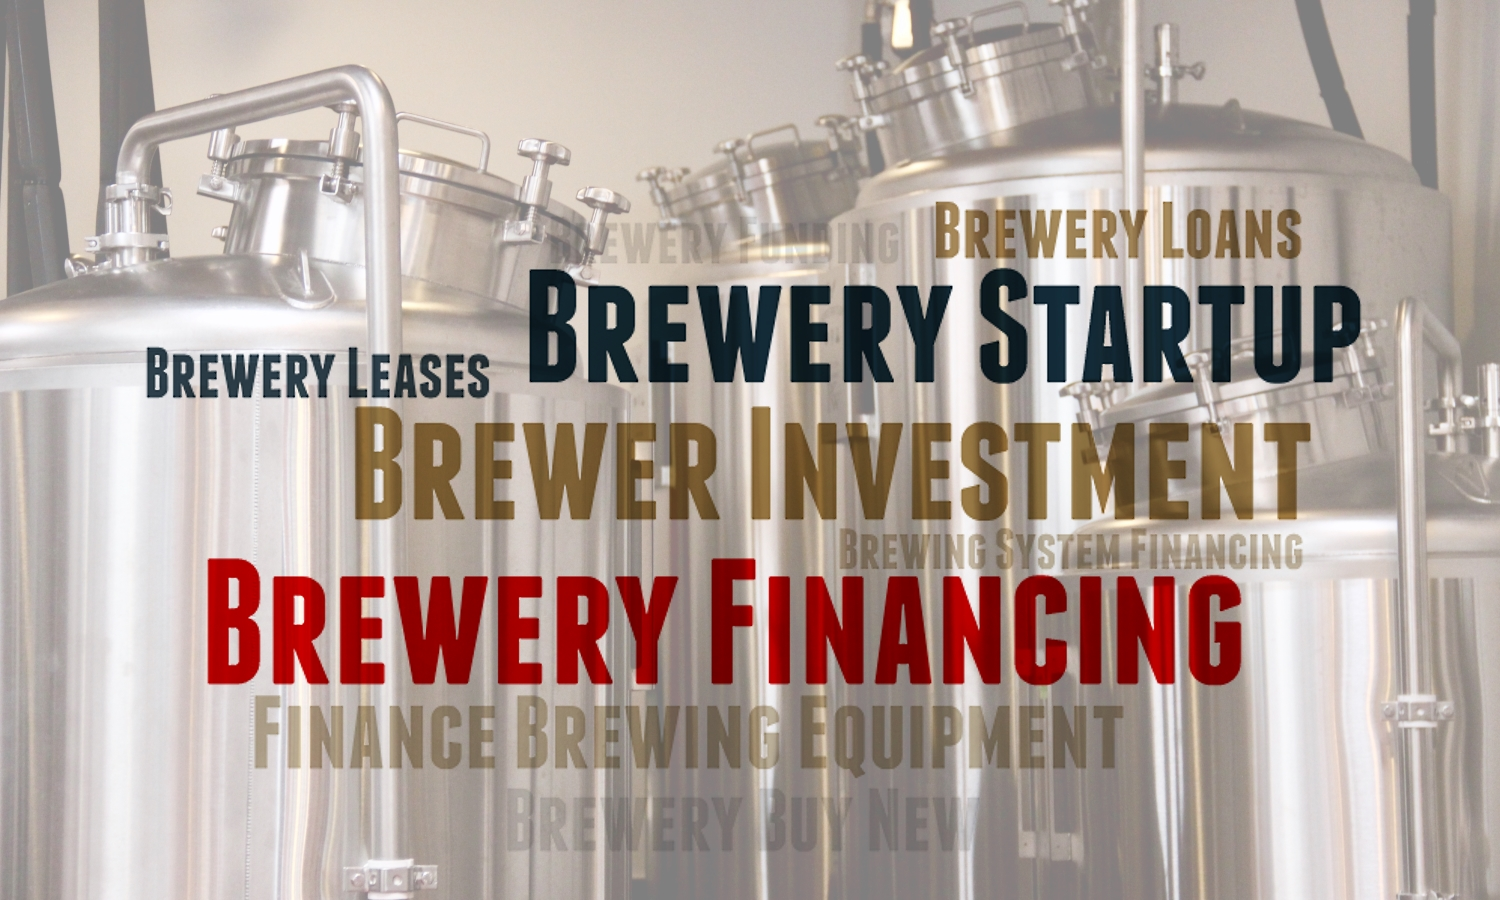 Brewery Financing For Brewing Equipment